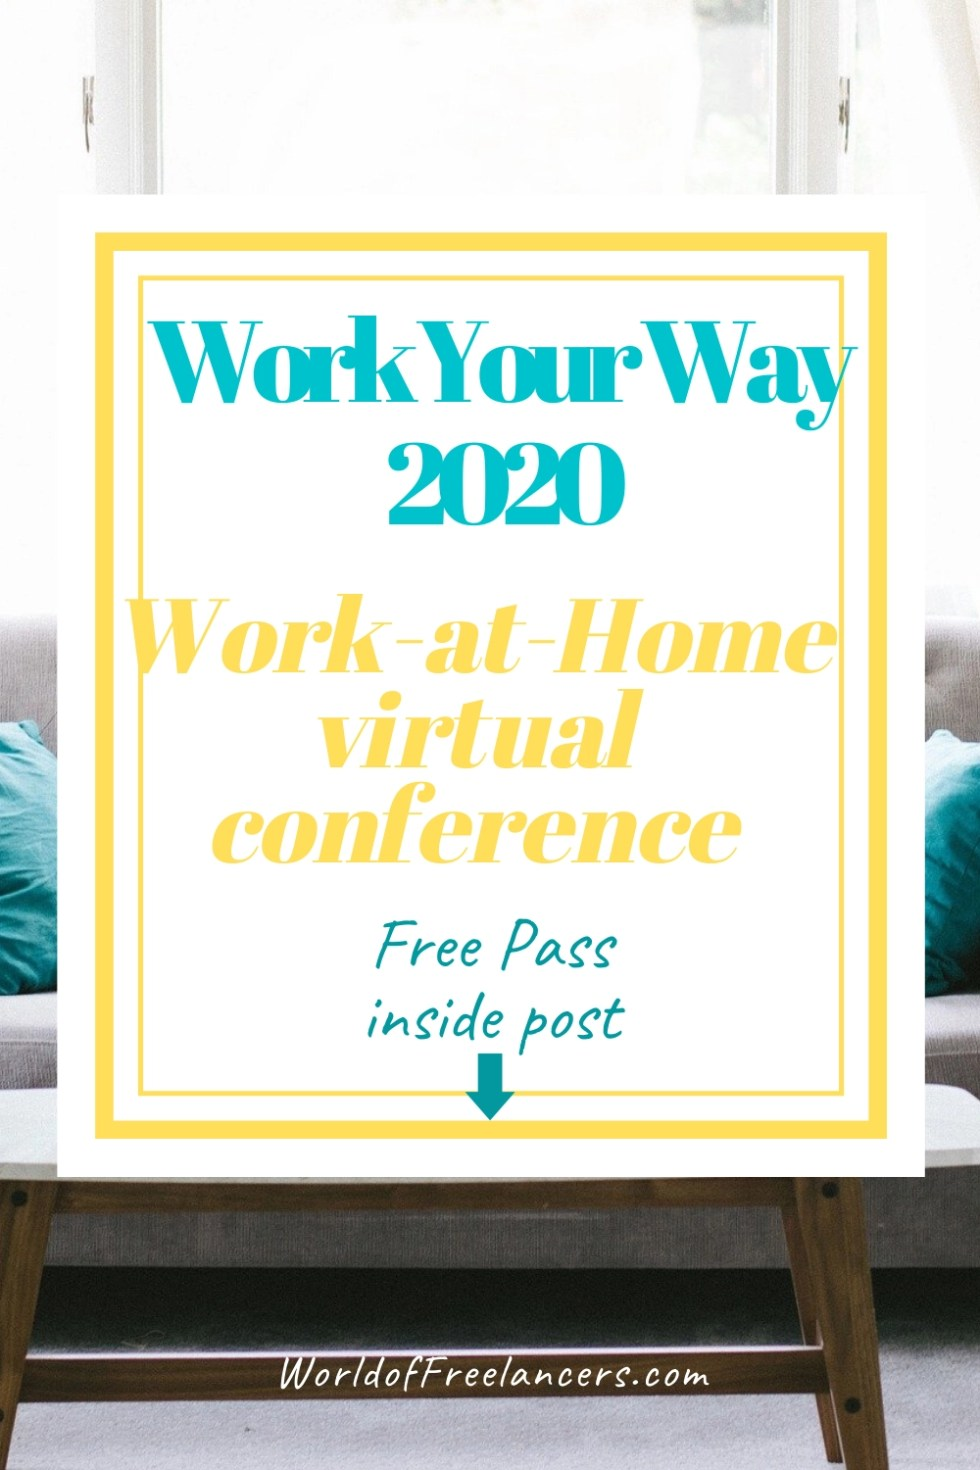 Work Your Way 2020, the work-at-home virtual conference free pass